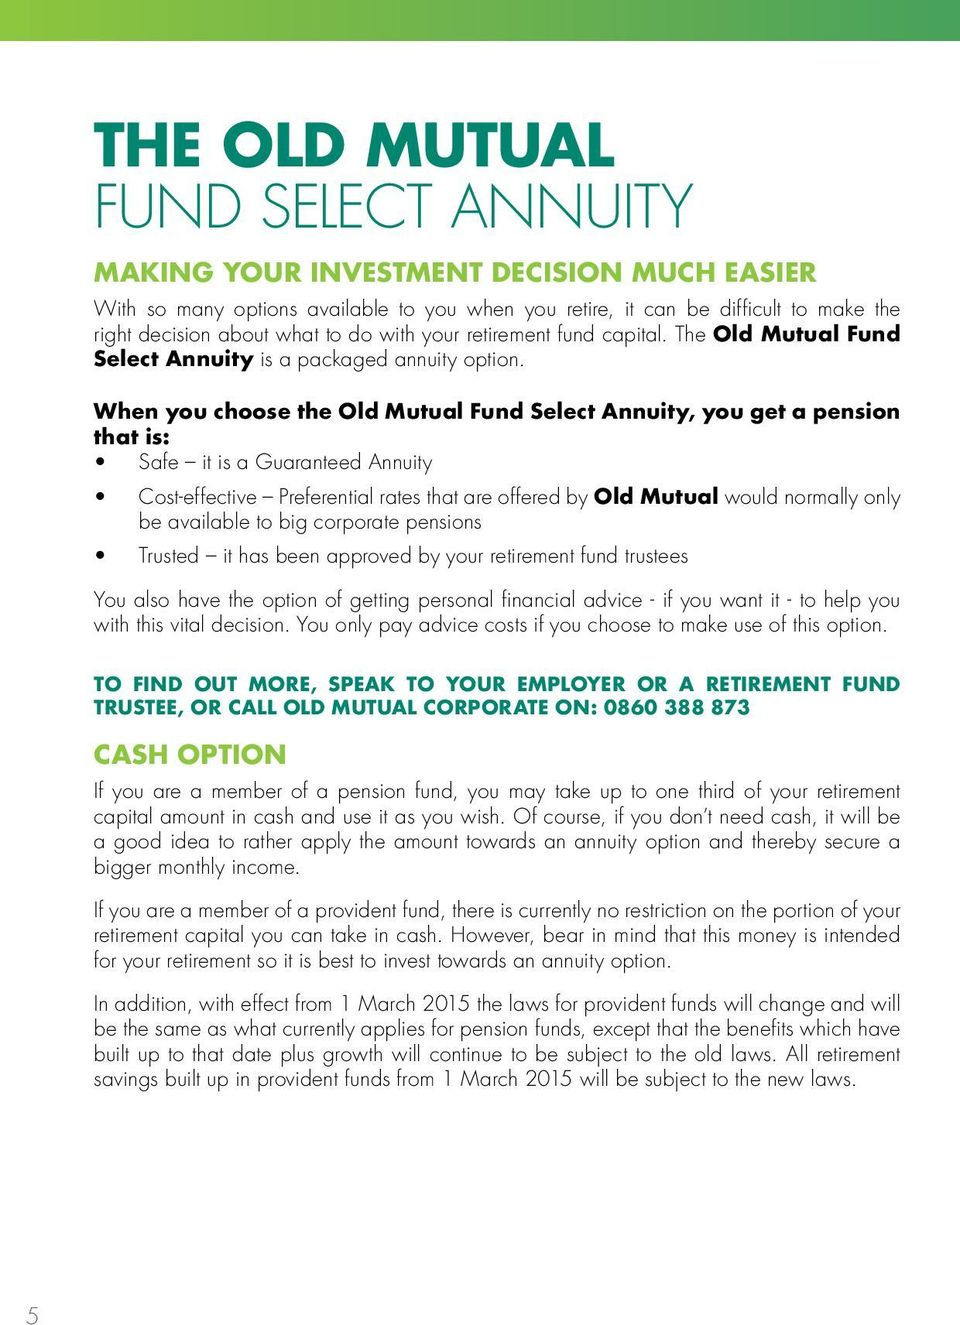 When you choose the Old Mutual Fund Select Annuity, you get a pension that is: Safe it is a Guaranteed Annuity Cost-effective Preferential rates that are offered by Old Mutual would normally only be